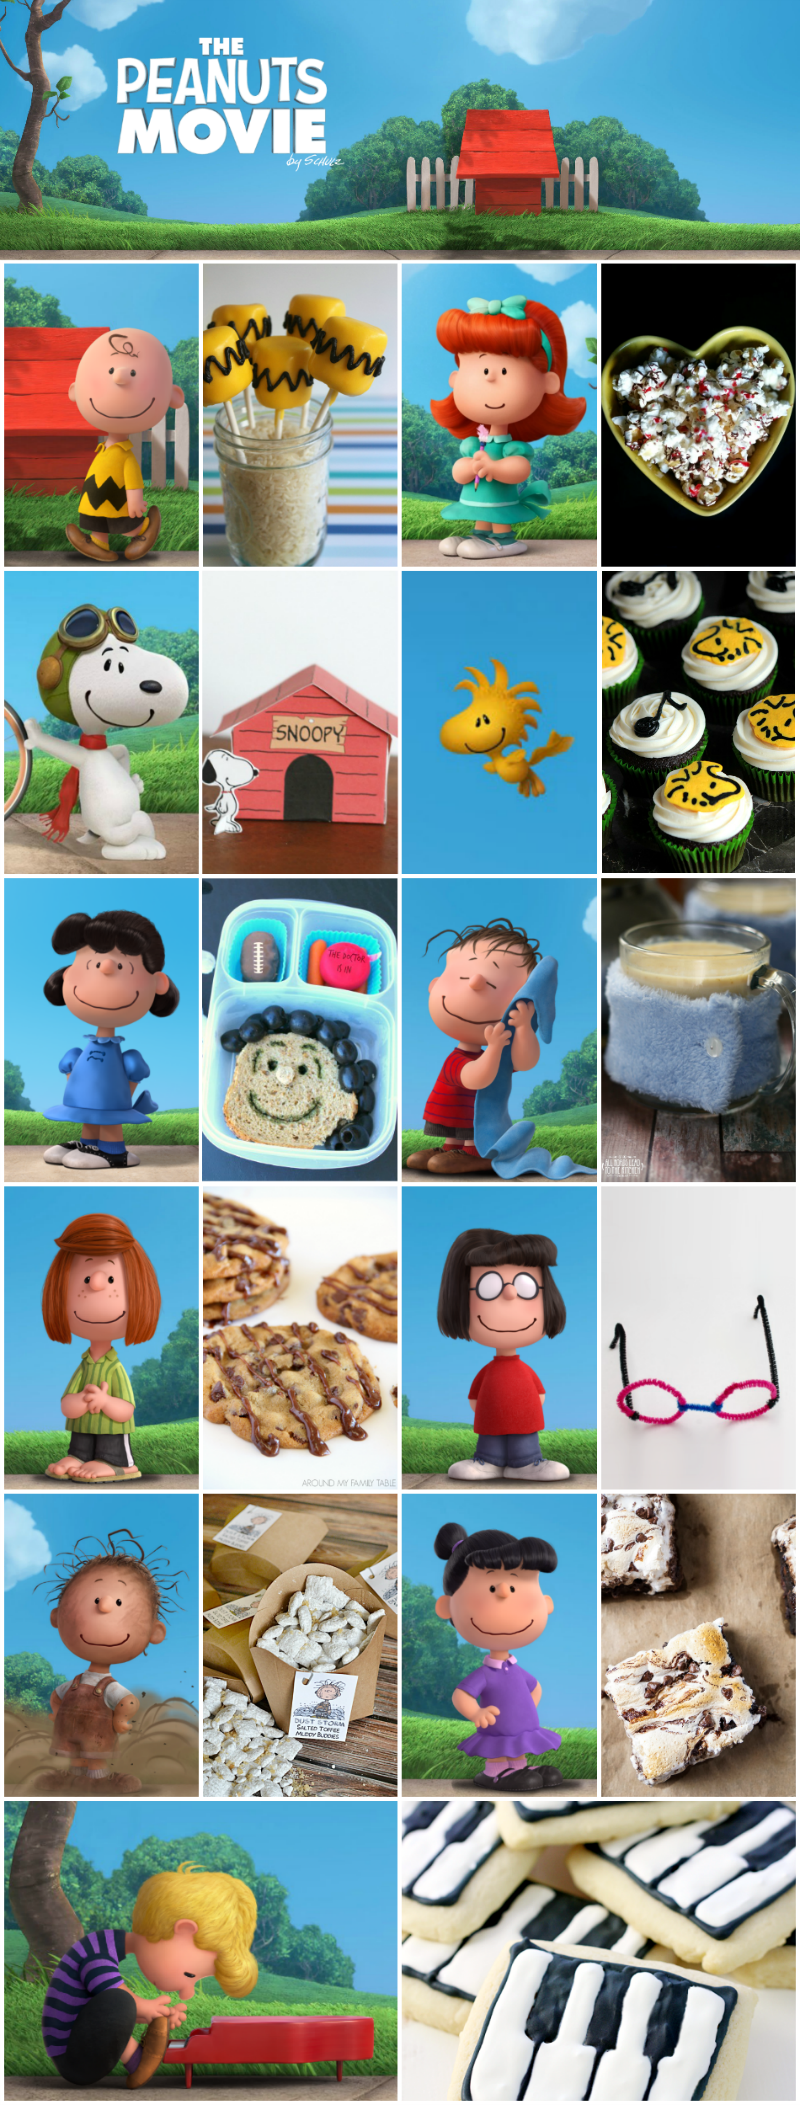 11 Eats, Treats, Drinks & Crafts Inspired by The Peanuts Movie